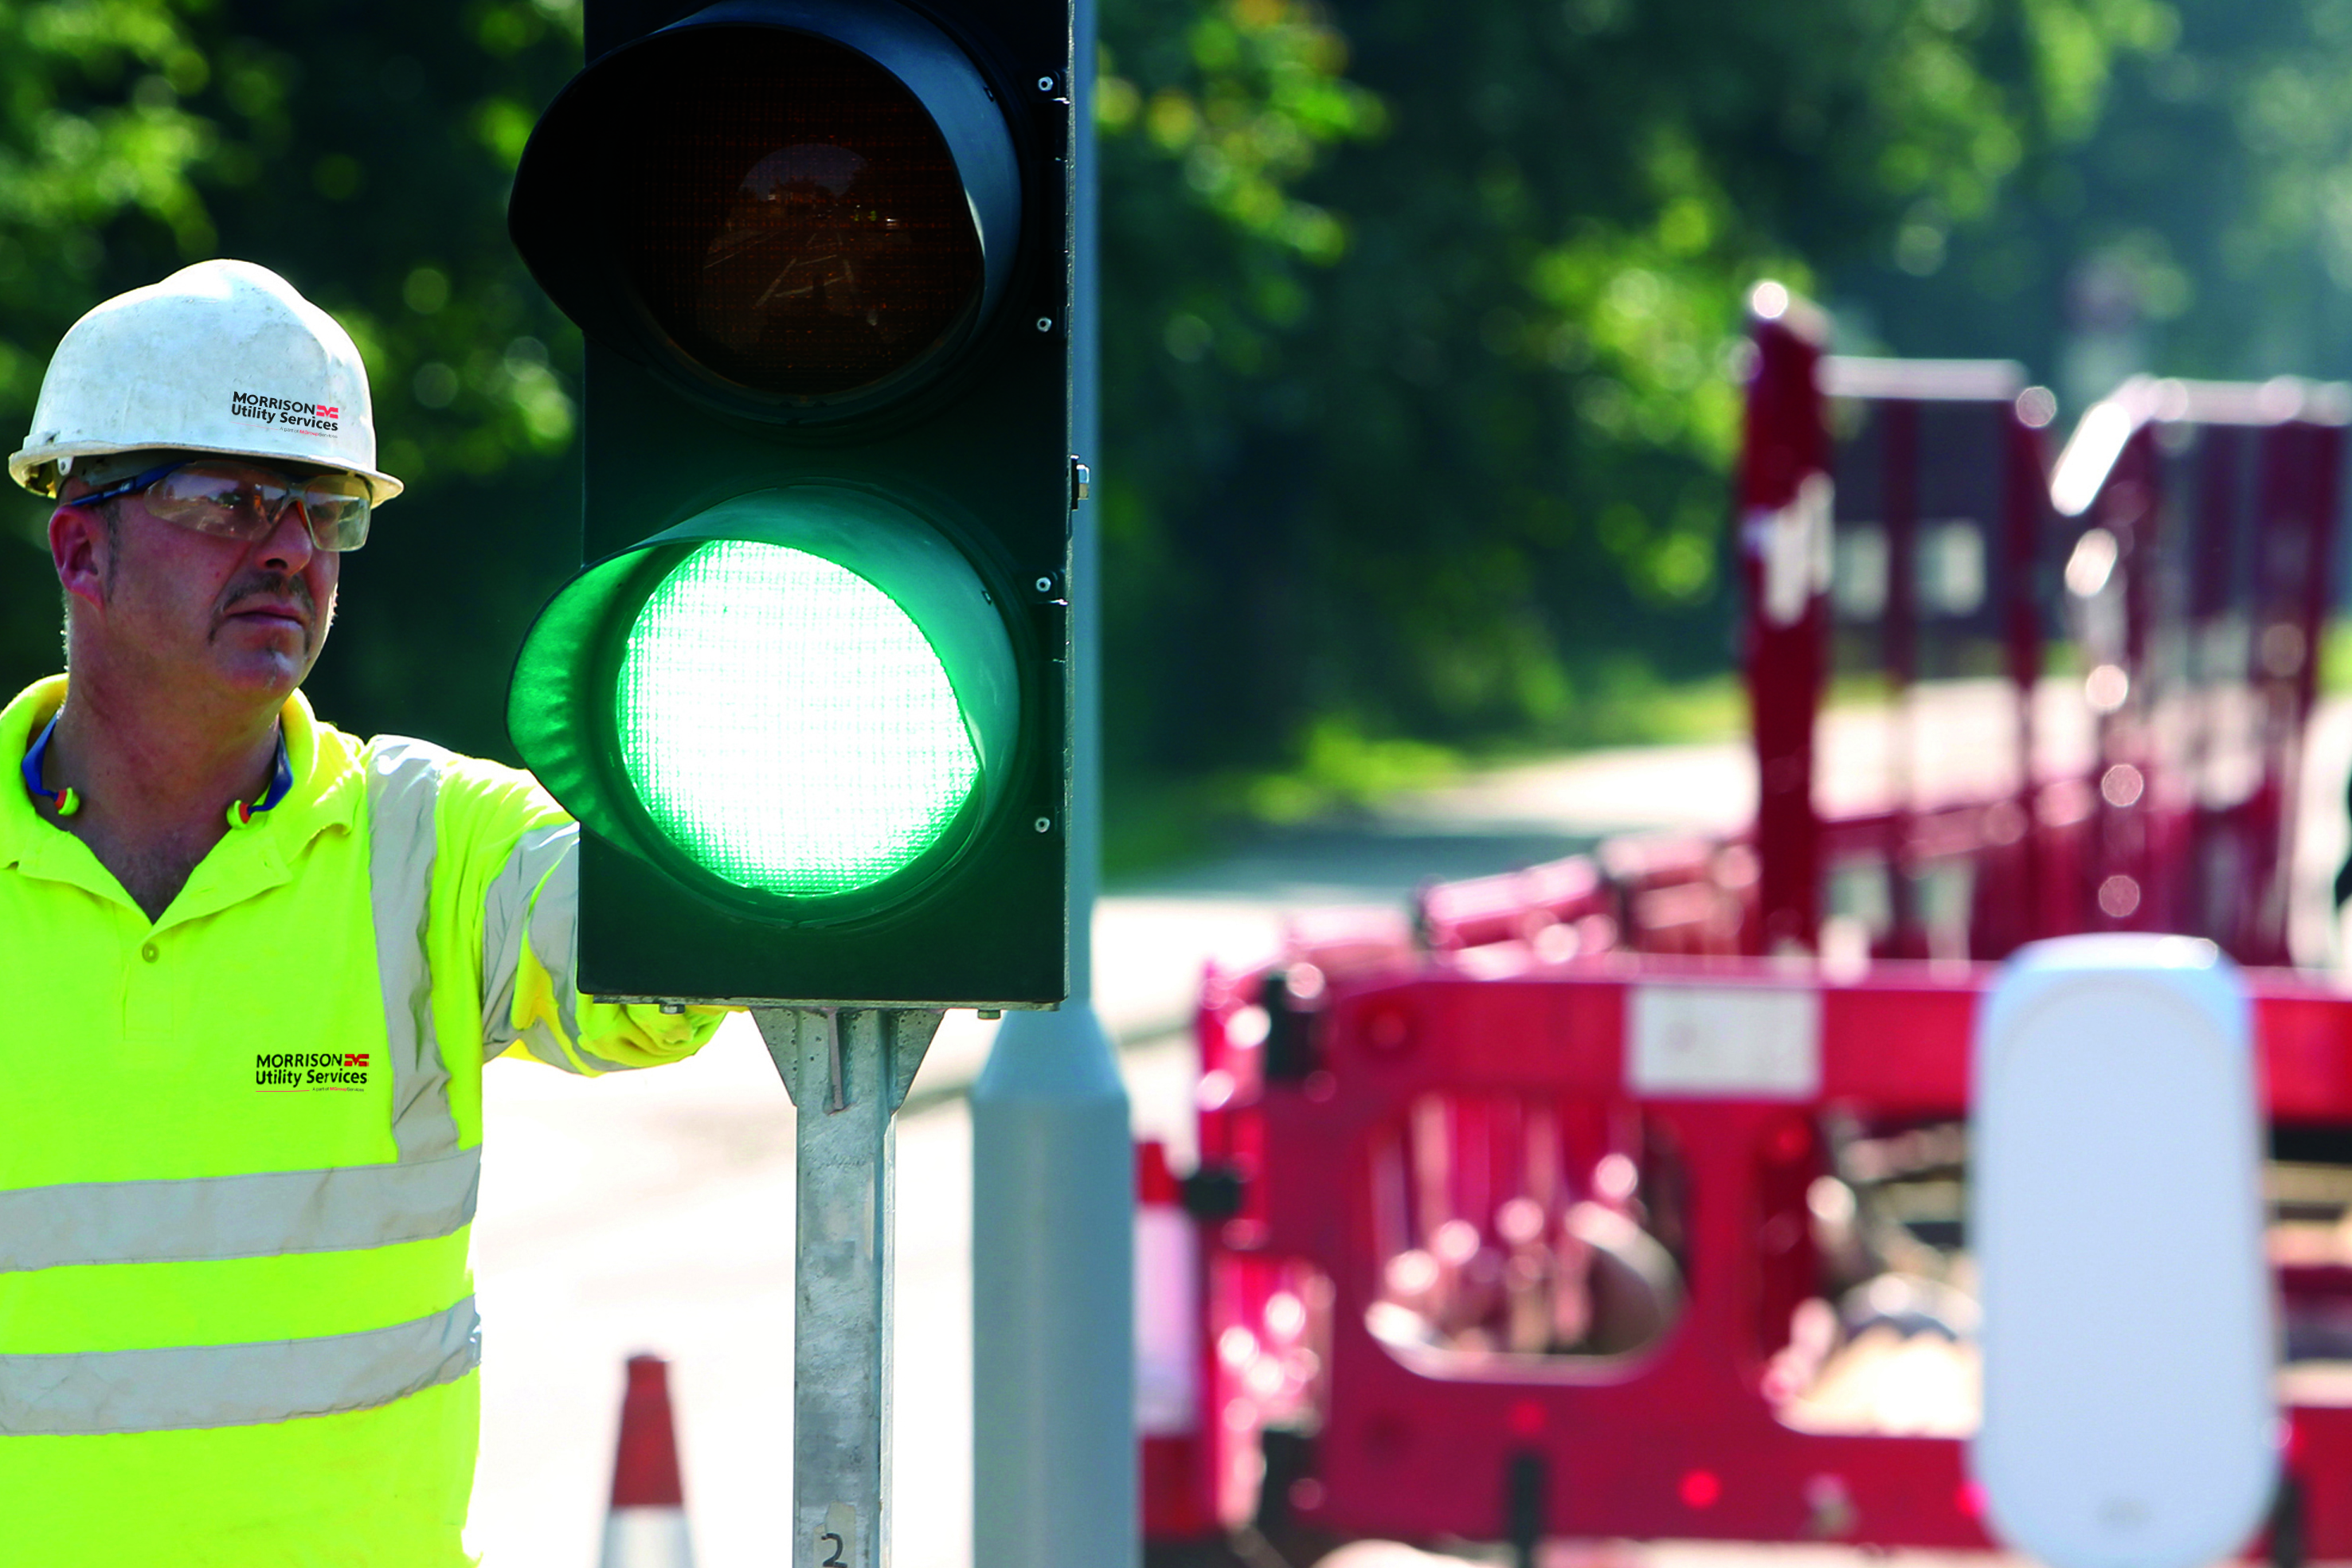 Morrison Utility Services Traffic Lights